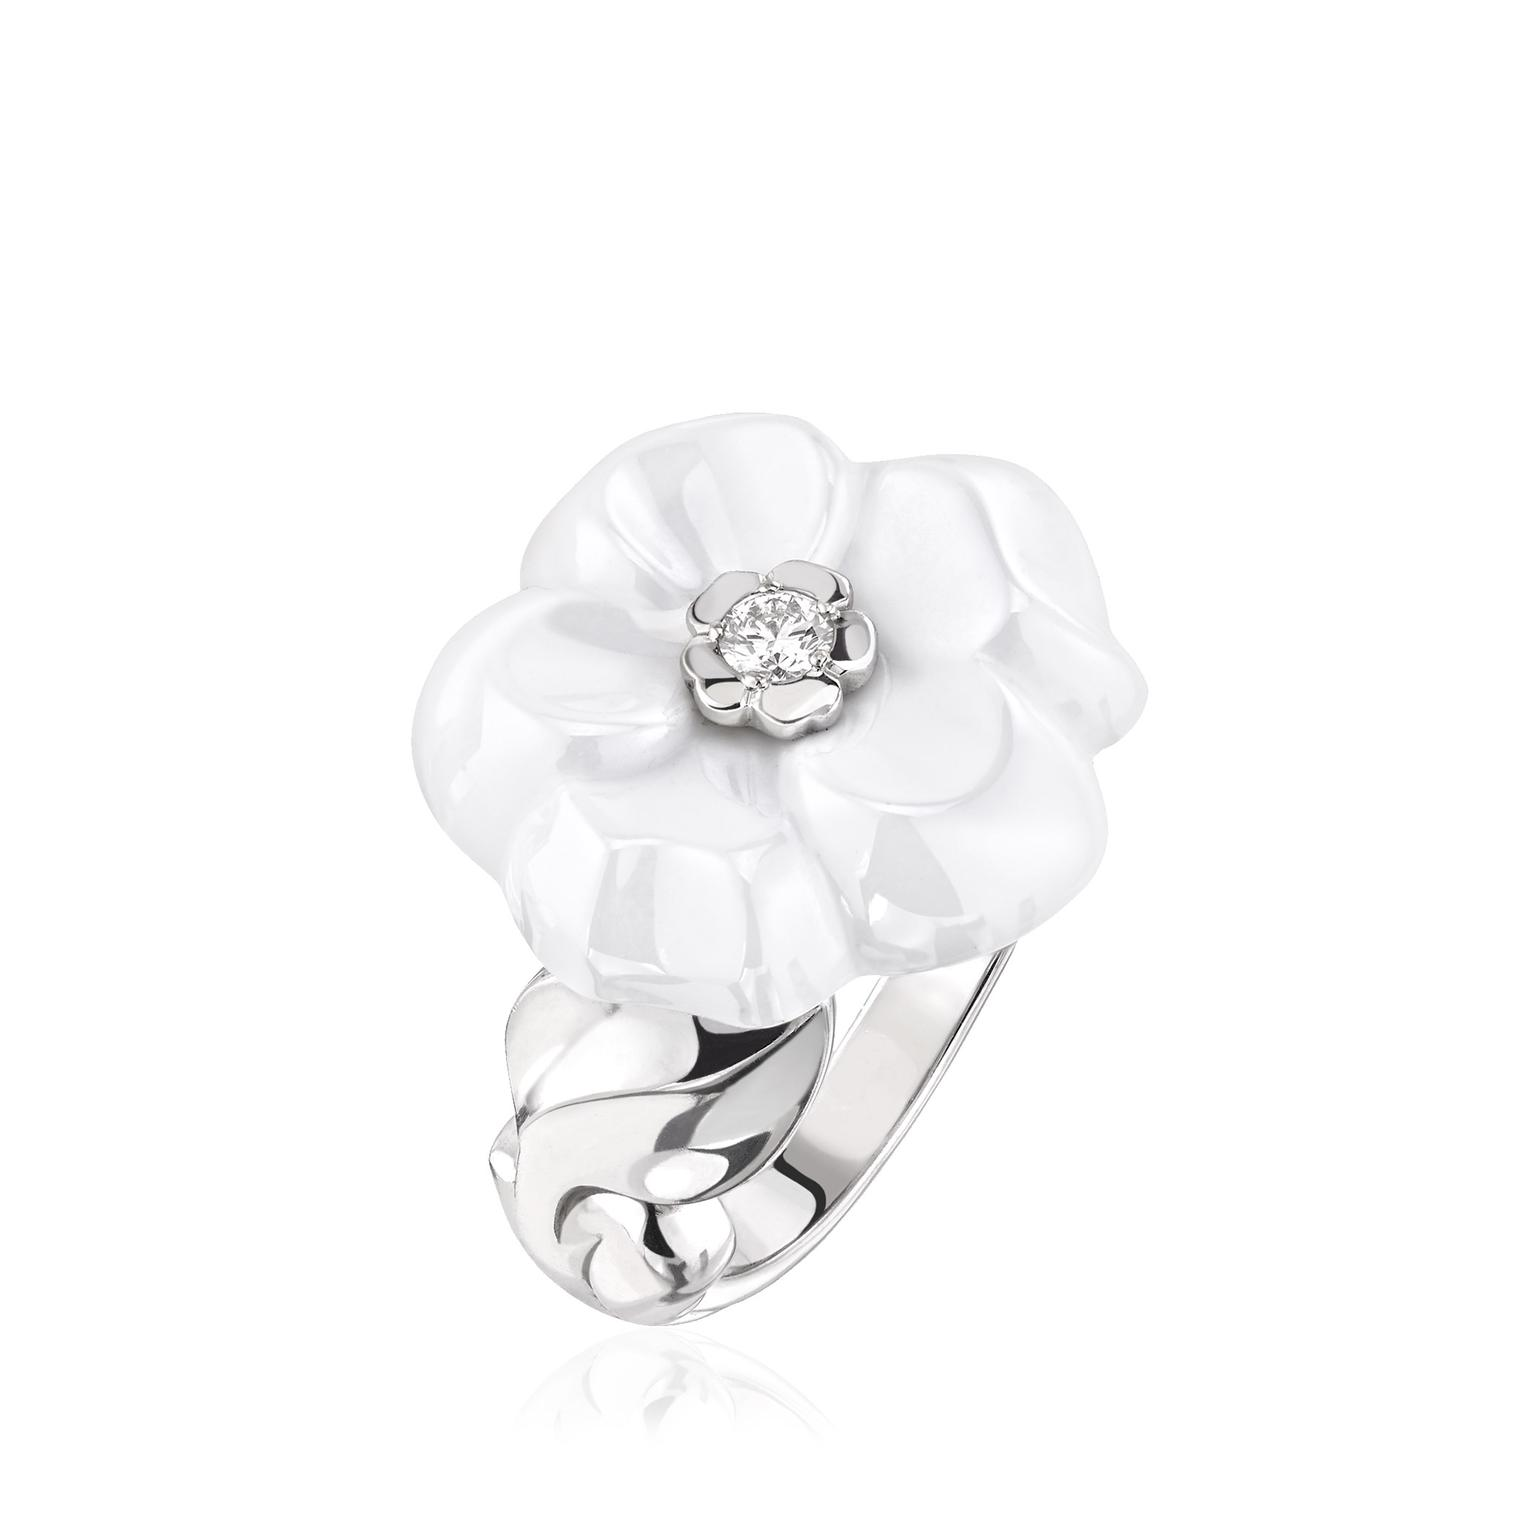 Chanel-Camelia-Galbe-ring-white-ceramic-zoom